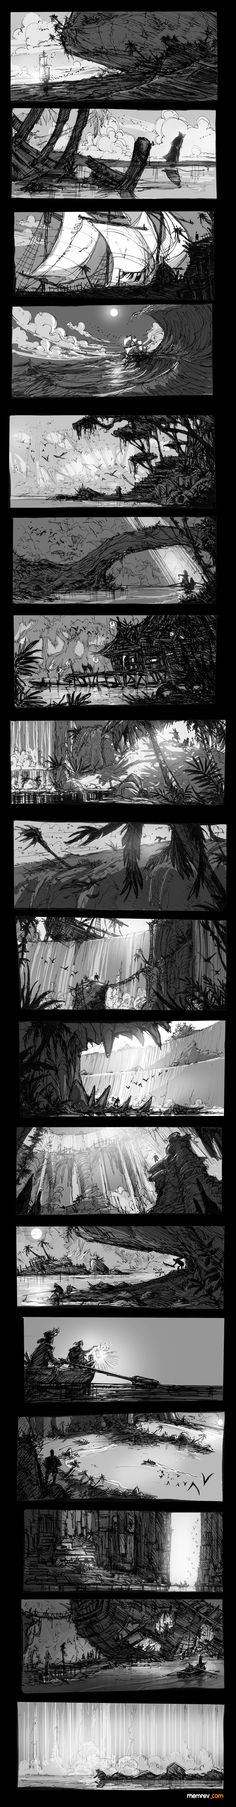 Rhemrev.Com | Visual Development | Bd-Dessins | Pinterest | Visual